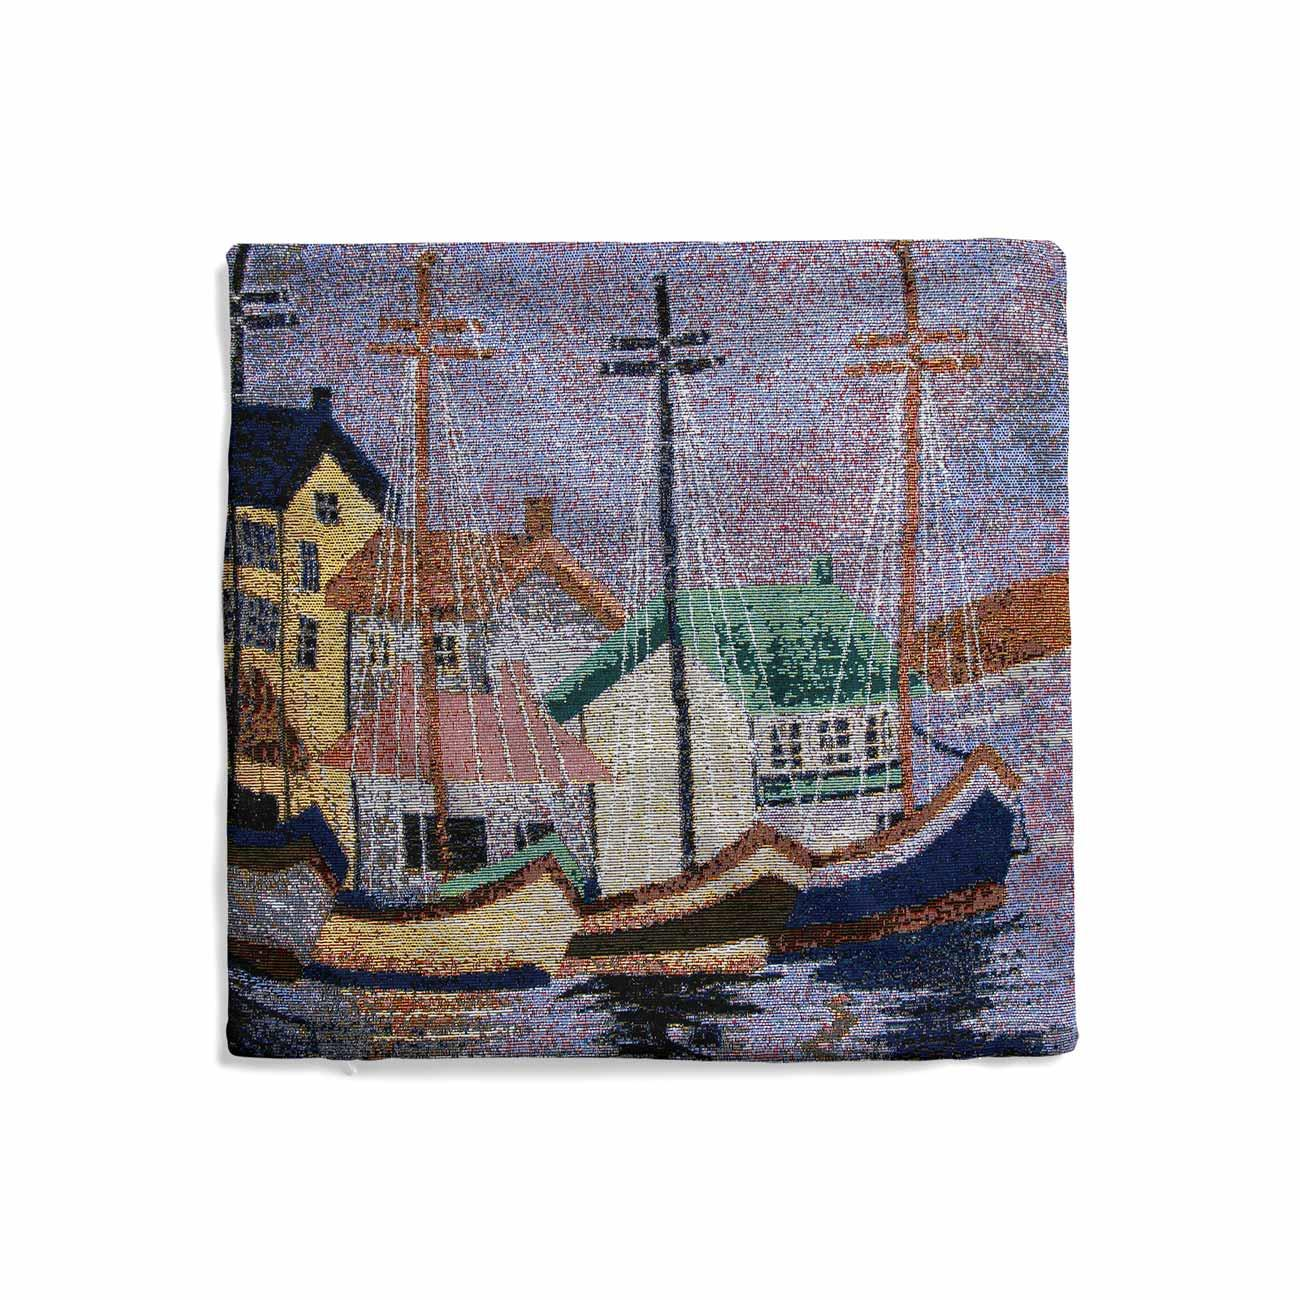 Tapestry-Cushion-Covers-Vintage-Pillow-Cover-Collection-18-034-45cm-Filled-Cushions thumbnail 195